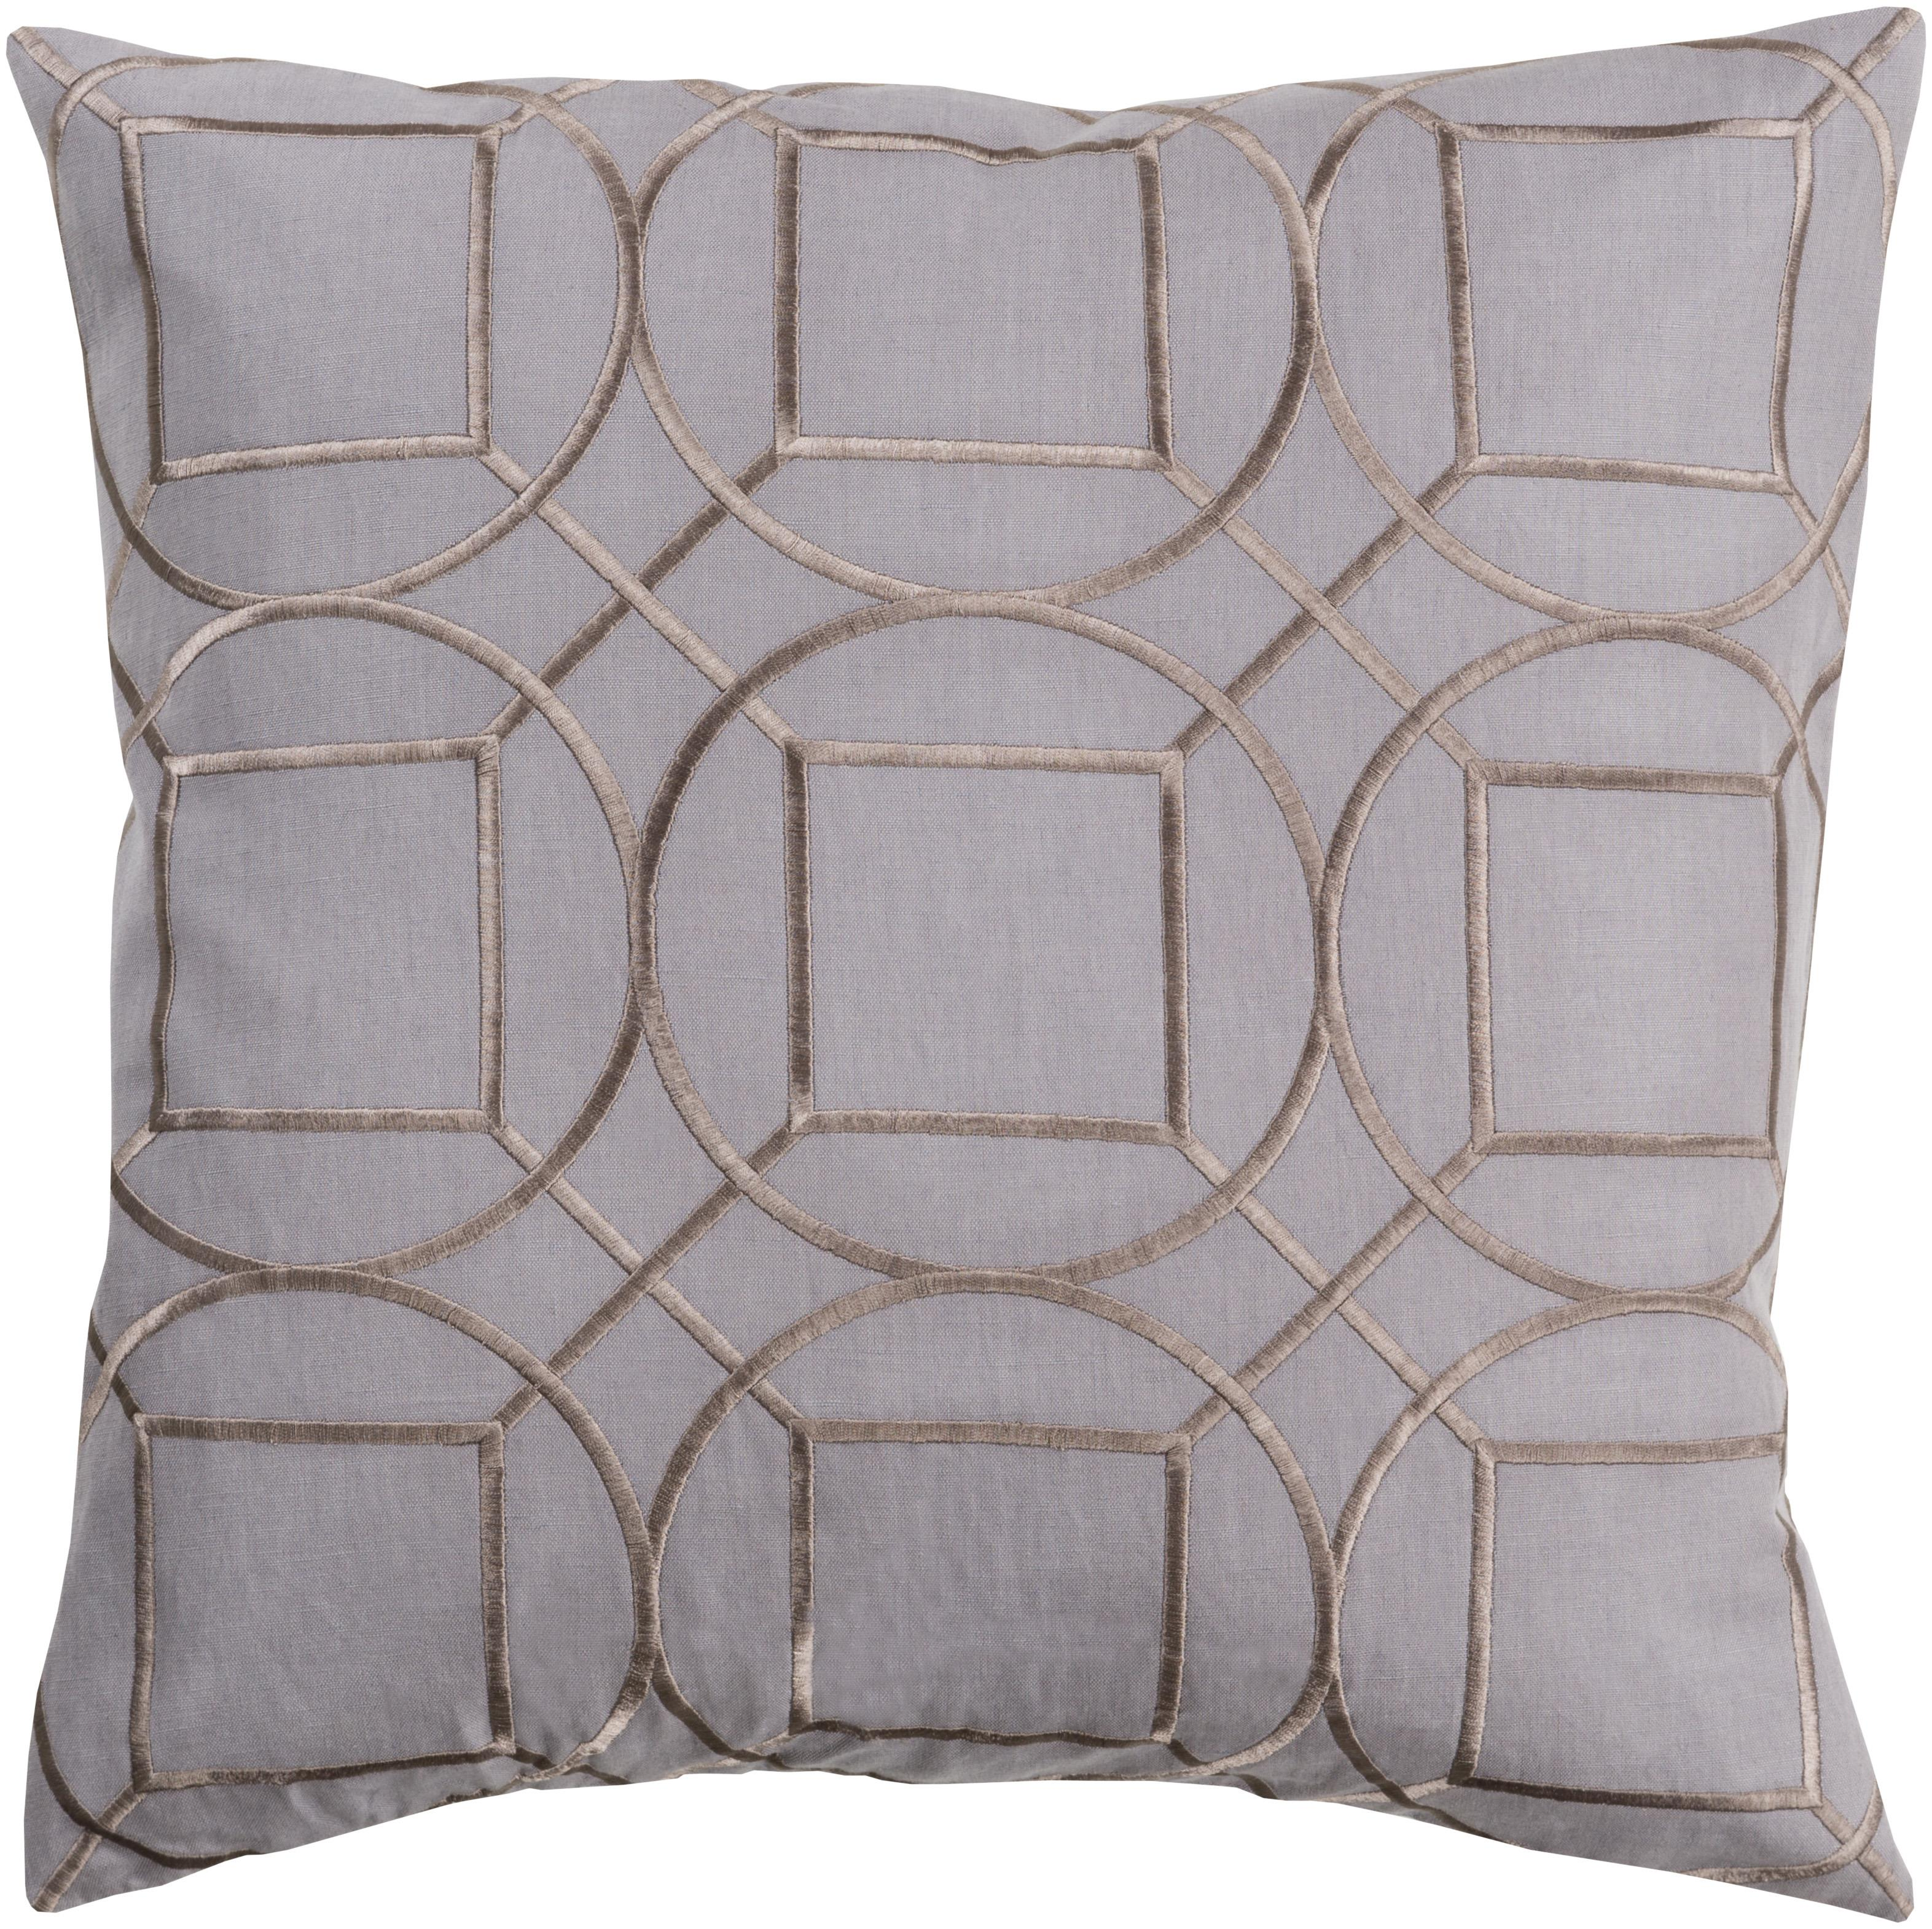 Skyline charcoal gray fabric throw pillow l 20 x w 20 x h - Fabric for throw pillows ...